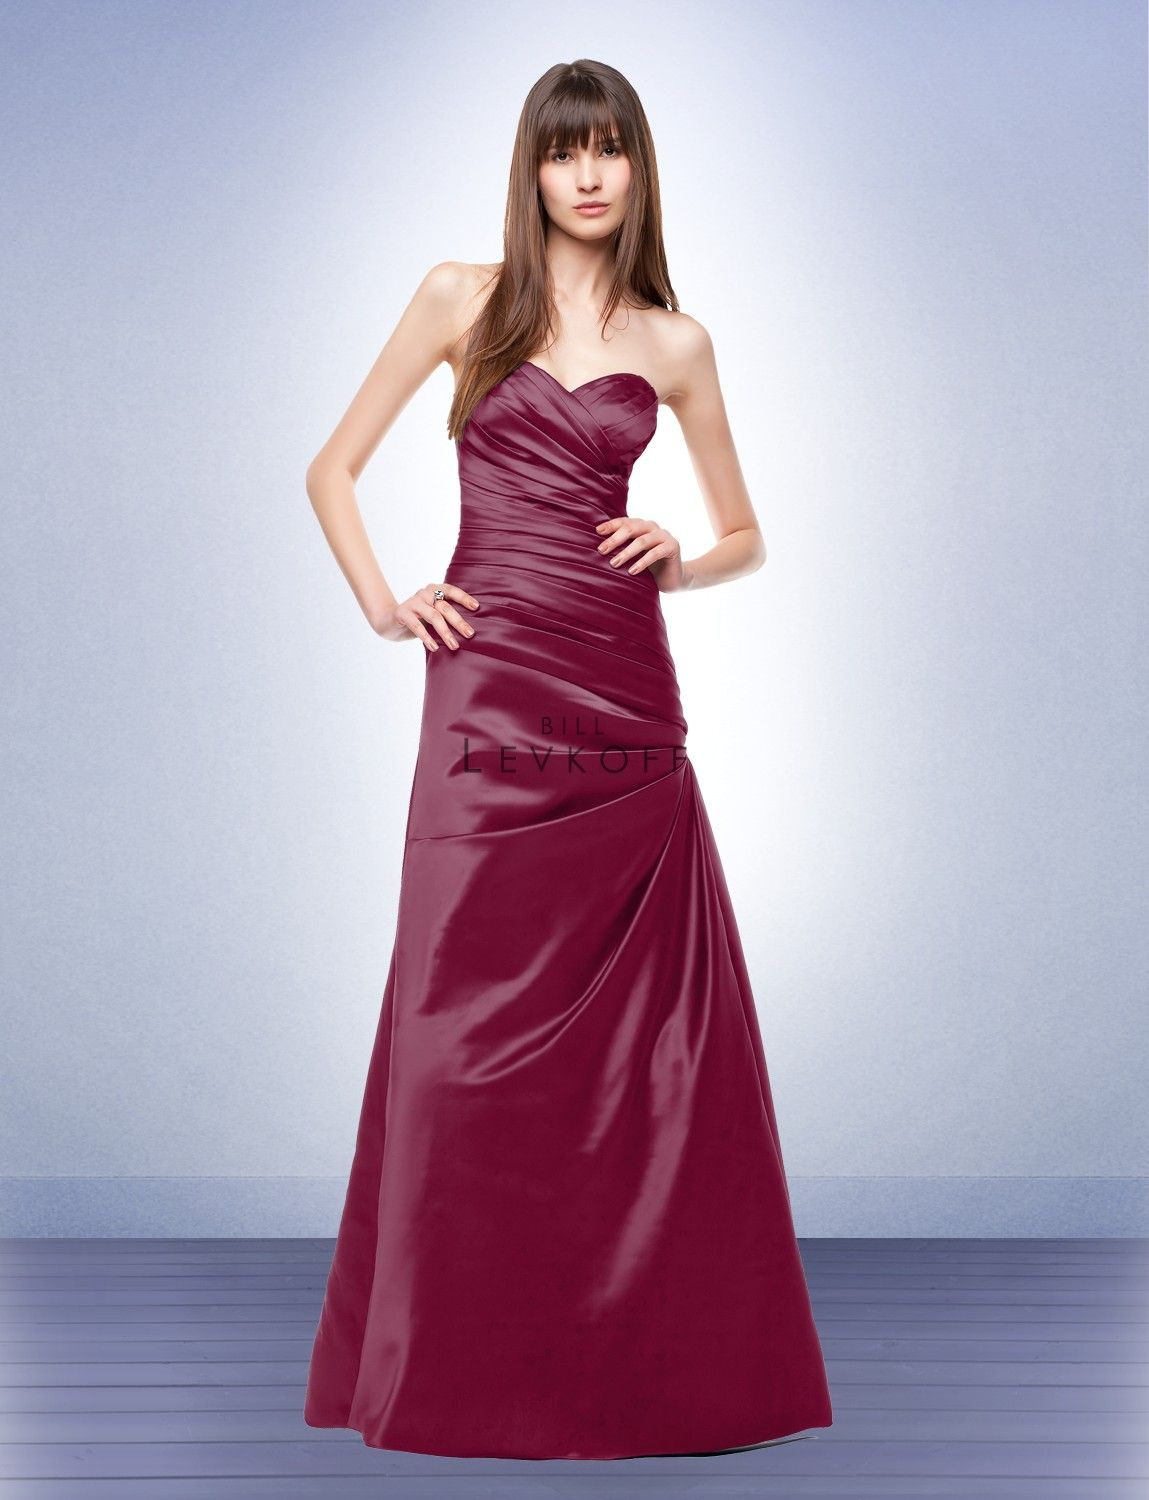 Bridal gowns with red accents  Bridesmaid Dress Style   Bridesmaid Dresses by Bill Levkoff